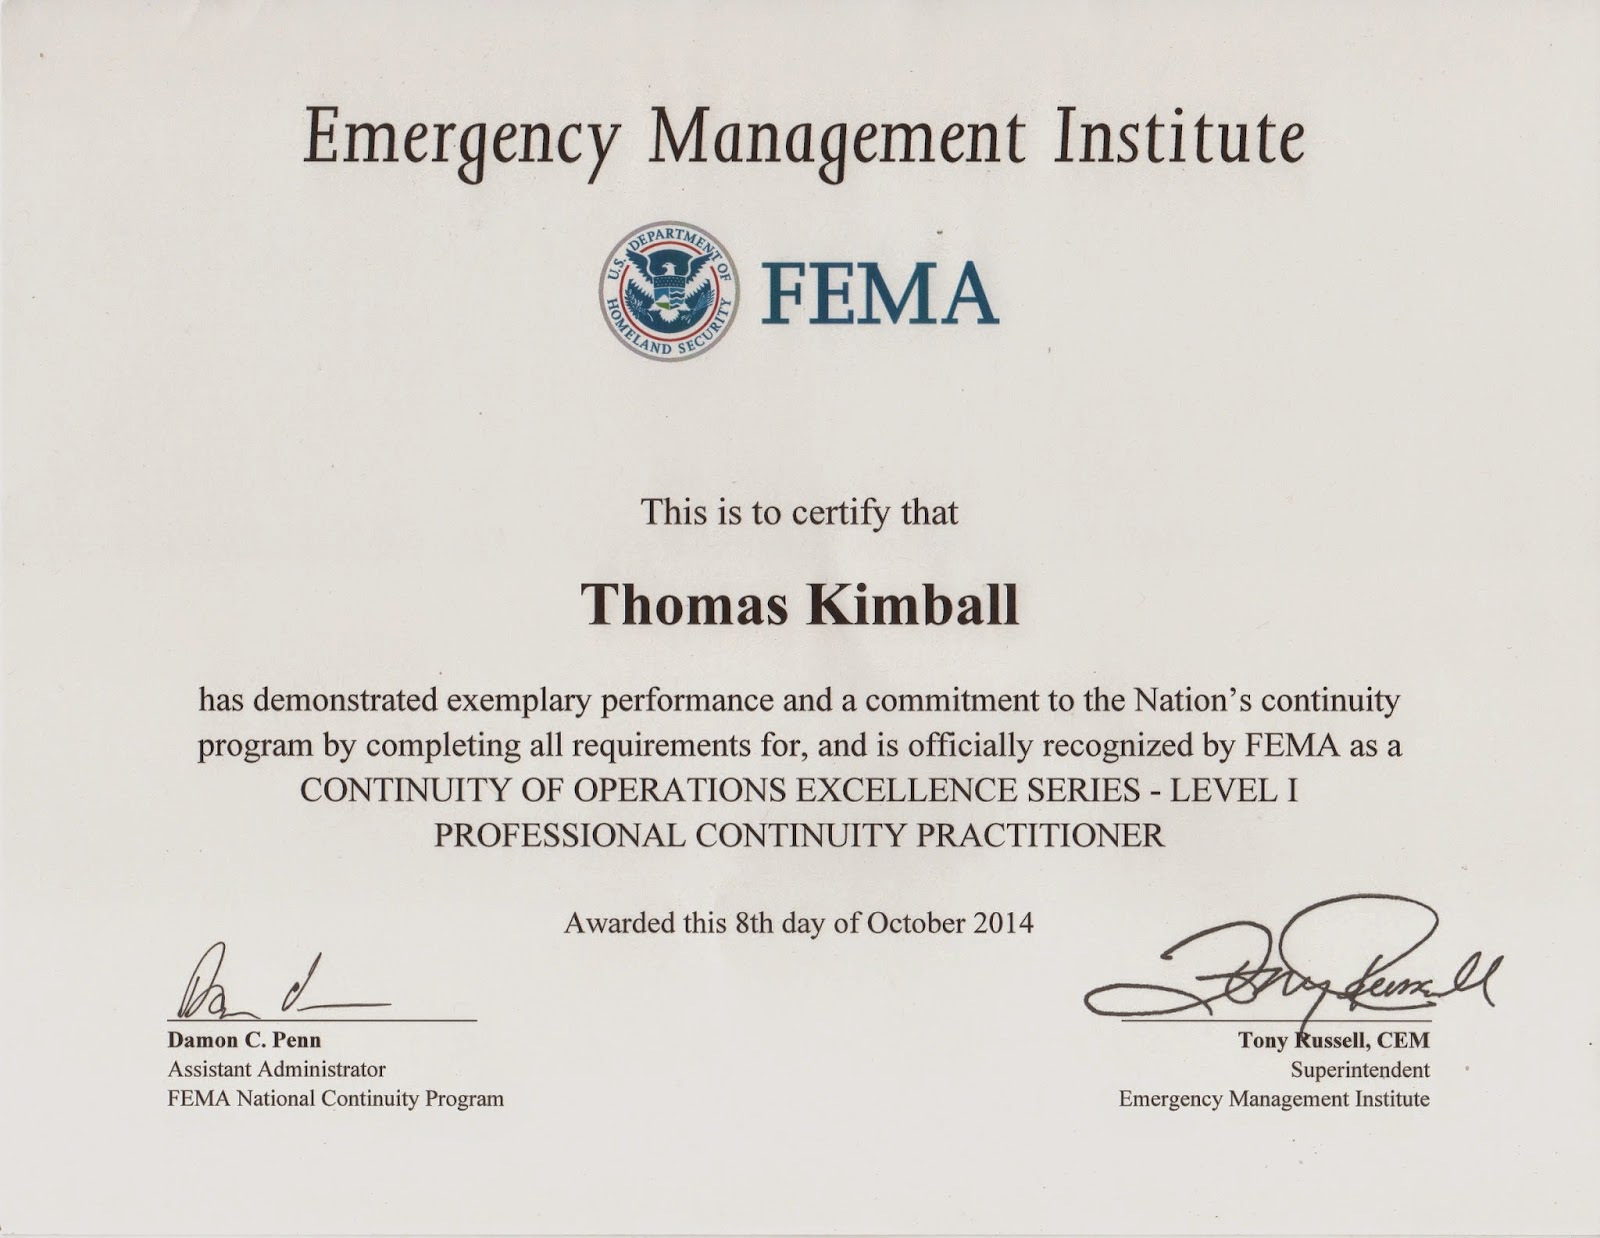 Thomas quick kimball wa8uns blog fema continuity of operations connecticut wanted to share fema continuity of operations excellence serieslevel 1 professional continuity practitioner certification 8th october xflitez Images